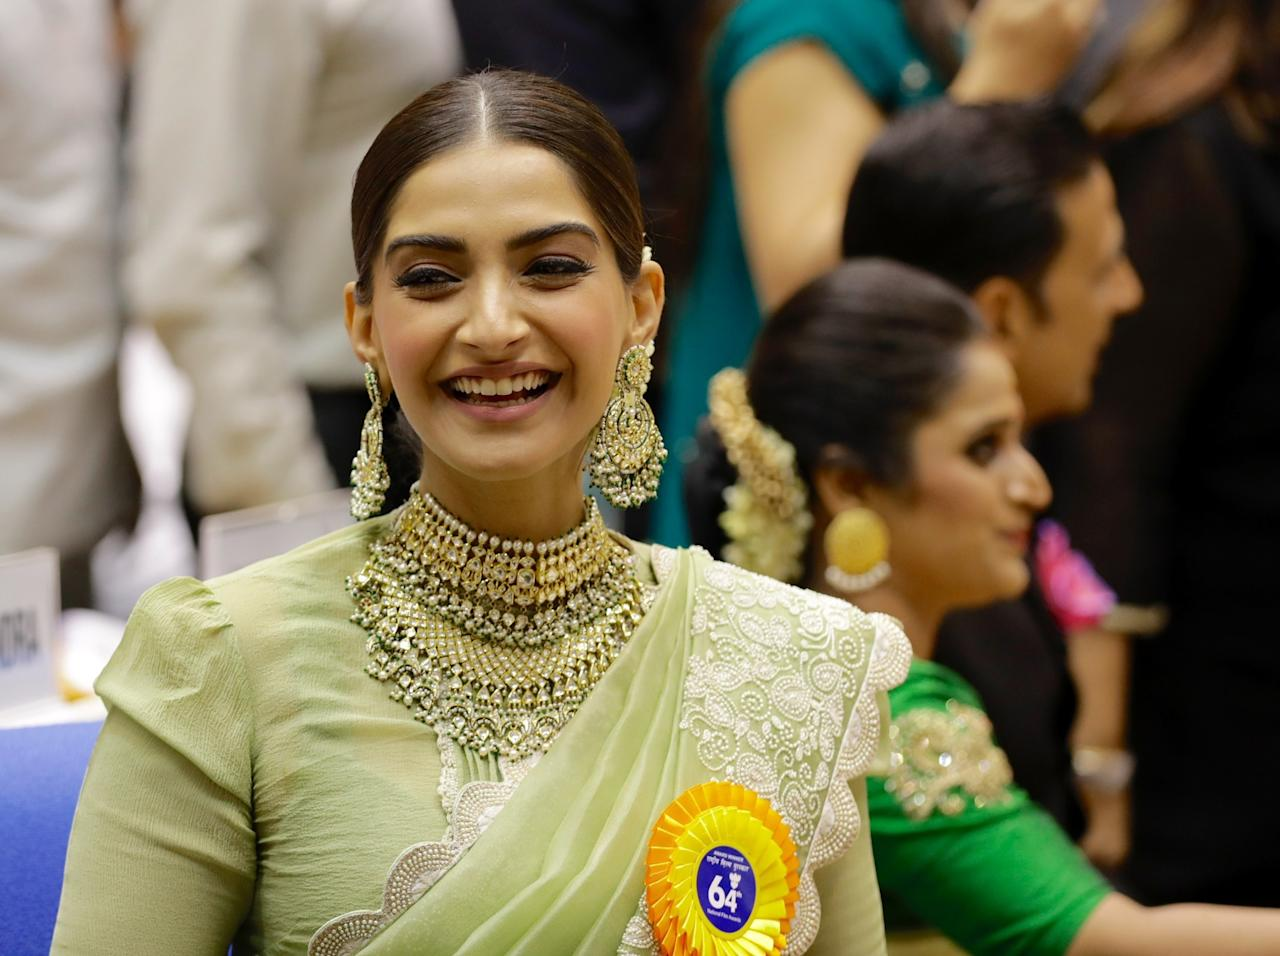 <p>Bollywood actress Sonam Kapoor attends the award ceremony for the 64th National Film Awards in New Delhi, India, Tuesday, May 3, 2017. Kapoor won the Special Jury Award for her role in the feature film Neerja. (AP Photo/Manish Swarup) </p>